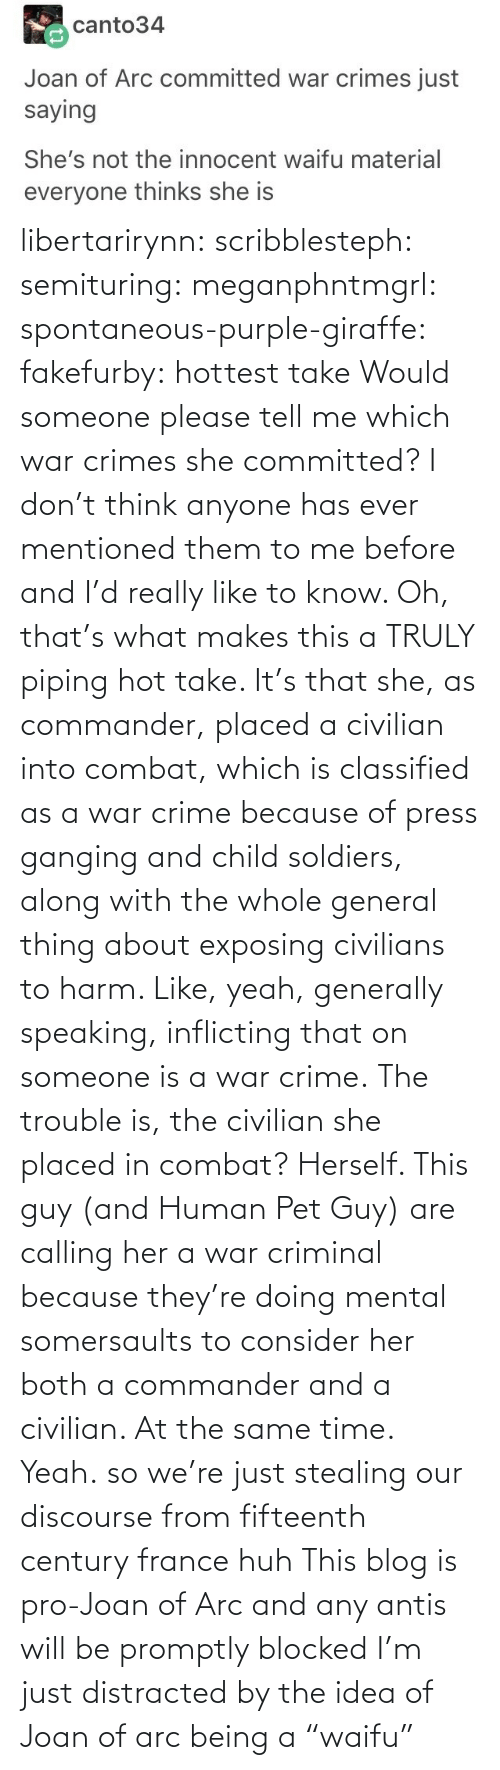 "Which: libertarirynn: scribblesteph:  semituring:  meganphntmgrl:  spontaneous-purple-giraffe:   fakefurby: hottest take  Would someone please tell me which war crimes she committed? I don't think anyone has ever mentioned them to me before and I'd really like to know.    Oh, that's what makes this a TRULY piping hot take. It's that she, as commander, placed a civilian into combat, which is classified as a war crime because of press ganging and child soldiers, along with the whole general thing about exposing civilians to harm. Like, yeah, generally speaking, inflicting that on someone is a war crime. The trouble is, the civilian she placed in combat? Herself.  This guy (and Human Pet Guy) are calling her a war criminal because they're doing mental somersaults to consider her both a commander and a civilian. At the same time.  Yeah.  so we're just stealing our discourse from fifteenth century france huh   This blog is pro-Joan of Arc and any antis will be promptly blocked   I'm just distracted by the idea of Joan of arc being a ""waifu"""